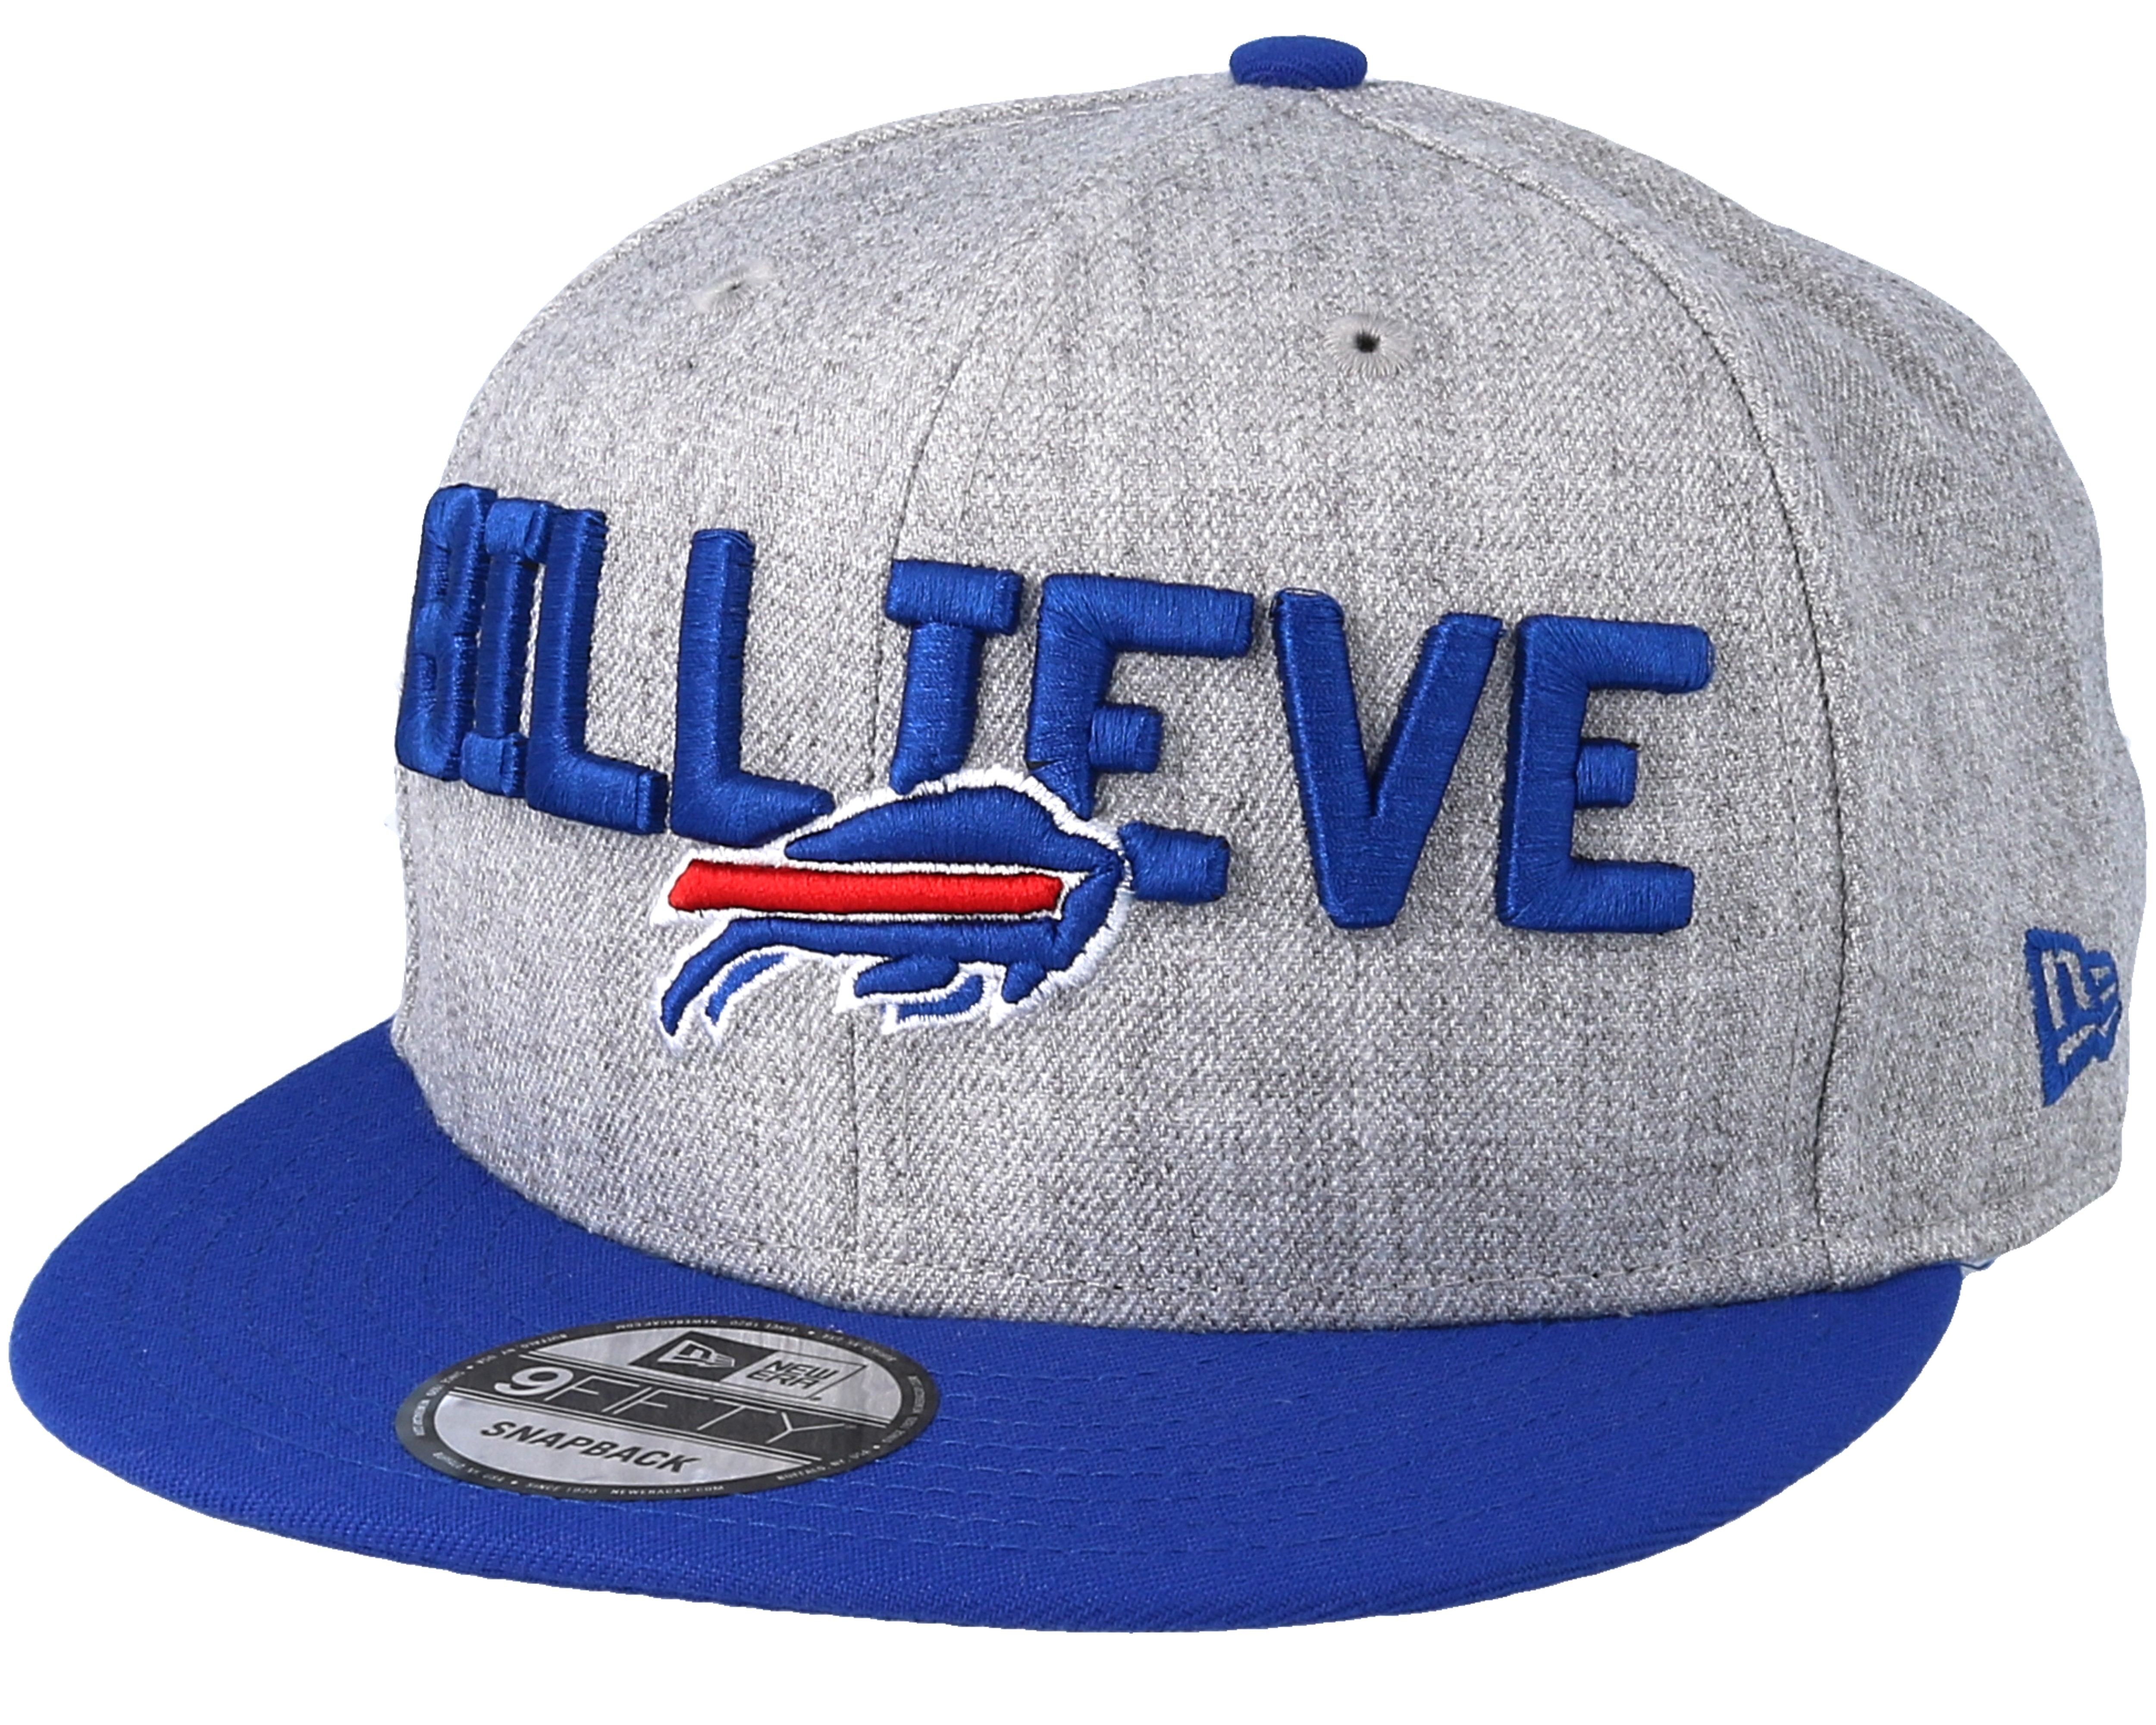 Product information Buffalo Bills 2018 NFL Draft On-Stage Grey Blue Snapback  - New Era 56600701f